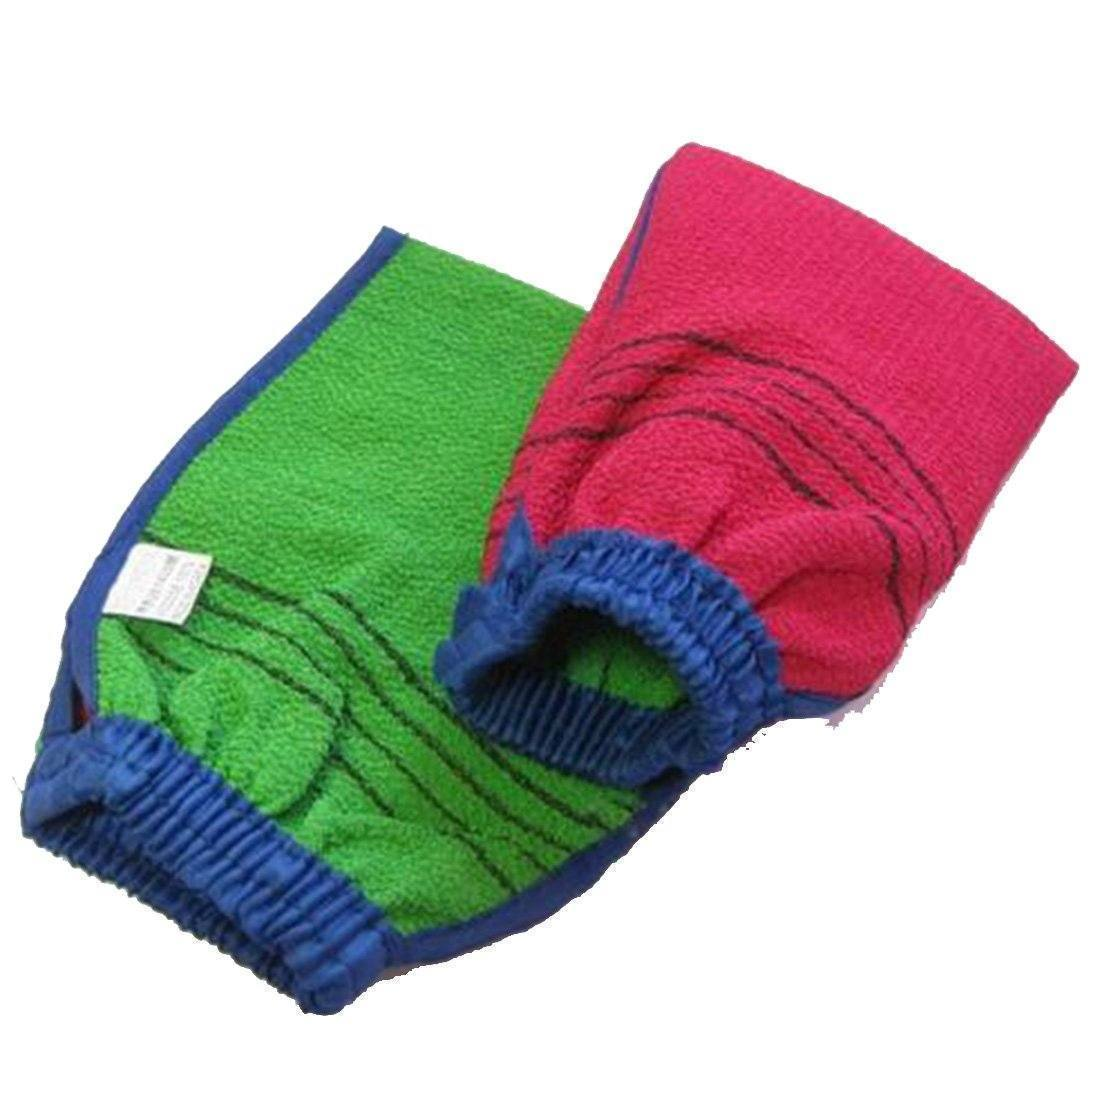 Durable Exfoliating Towel (2pcs)